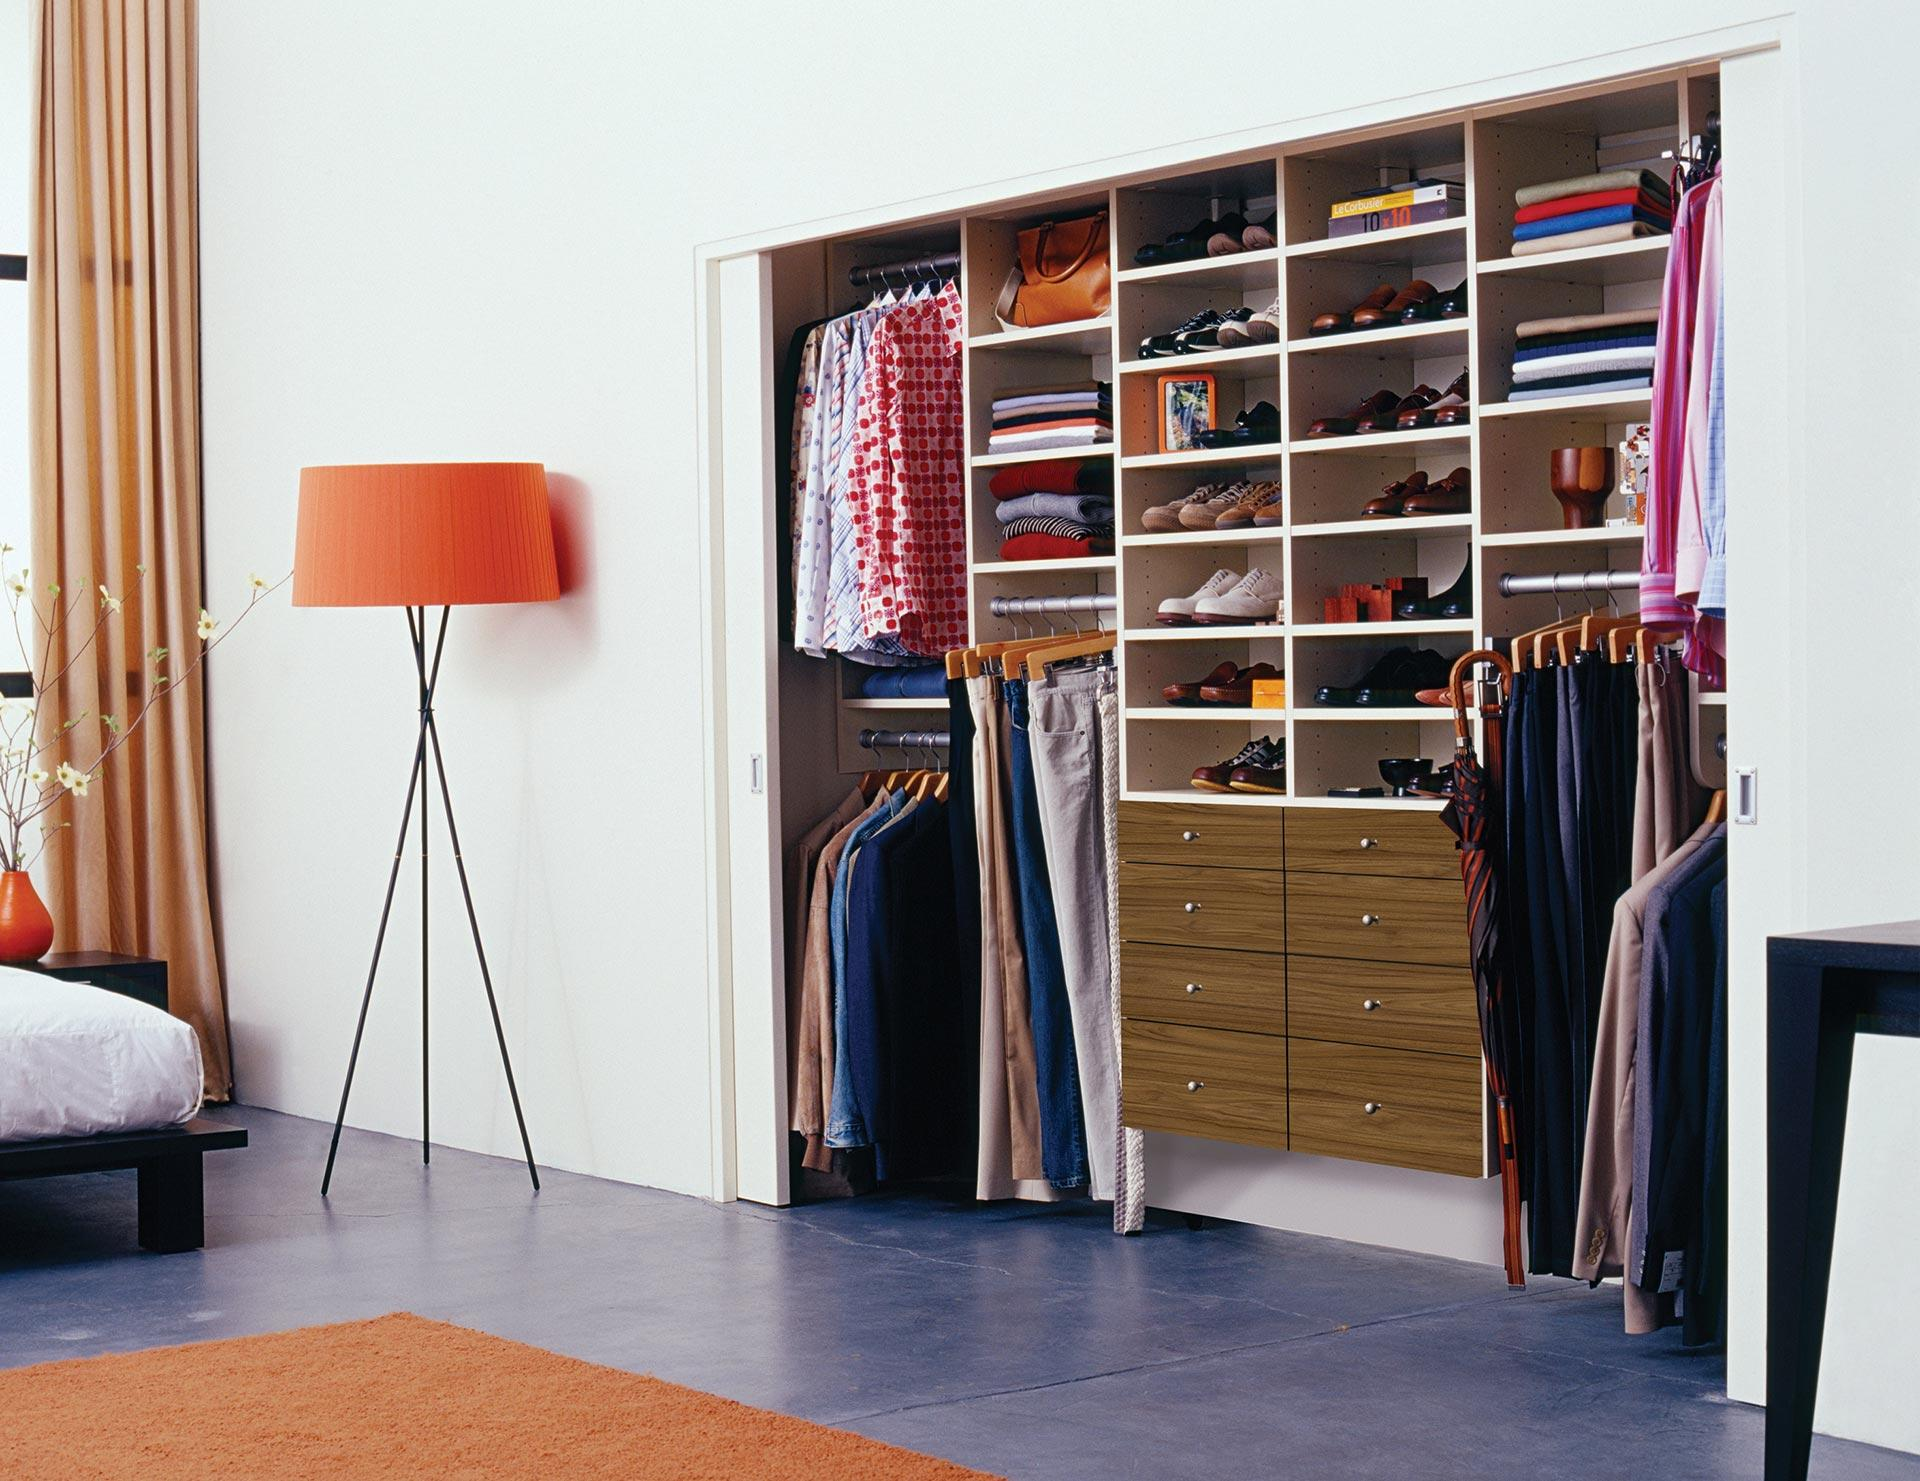 Reach In Closet Design Ask A Pro: Find Your Sanity In Reach-In ...